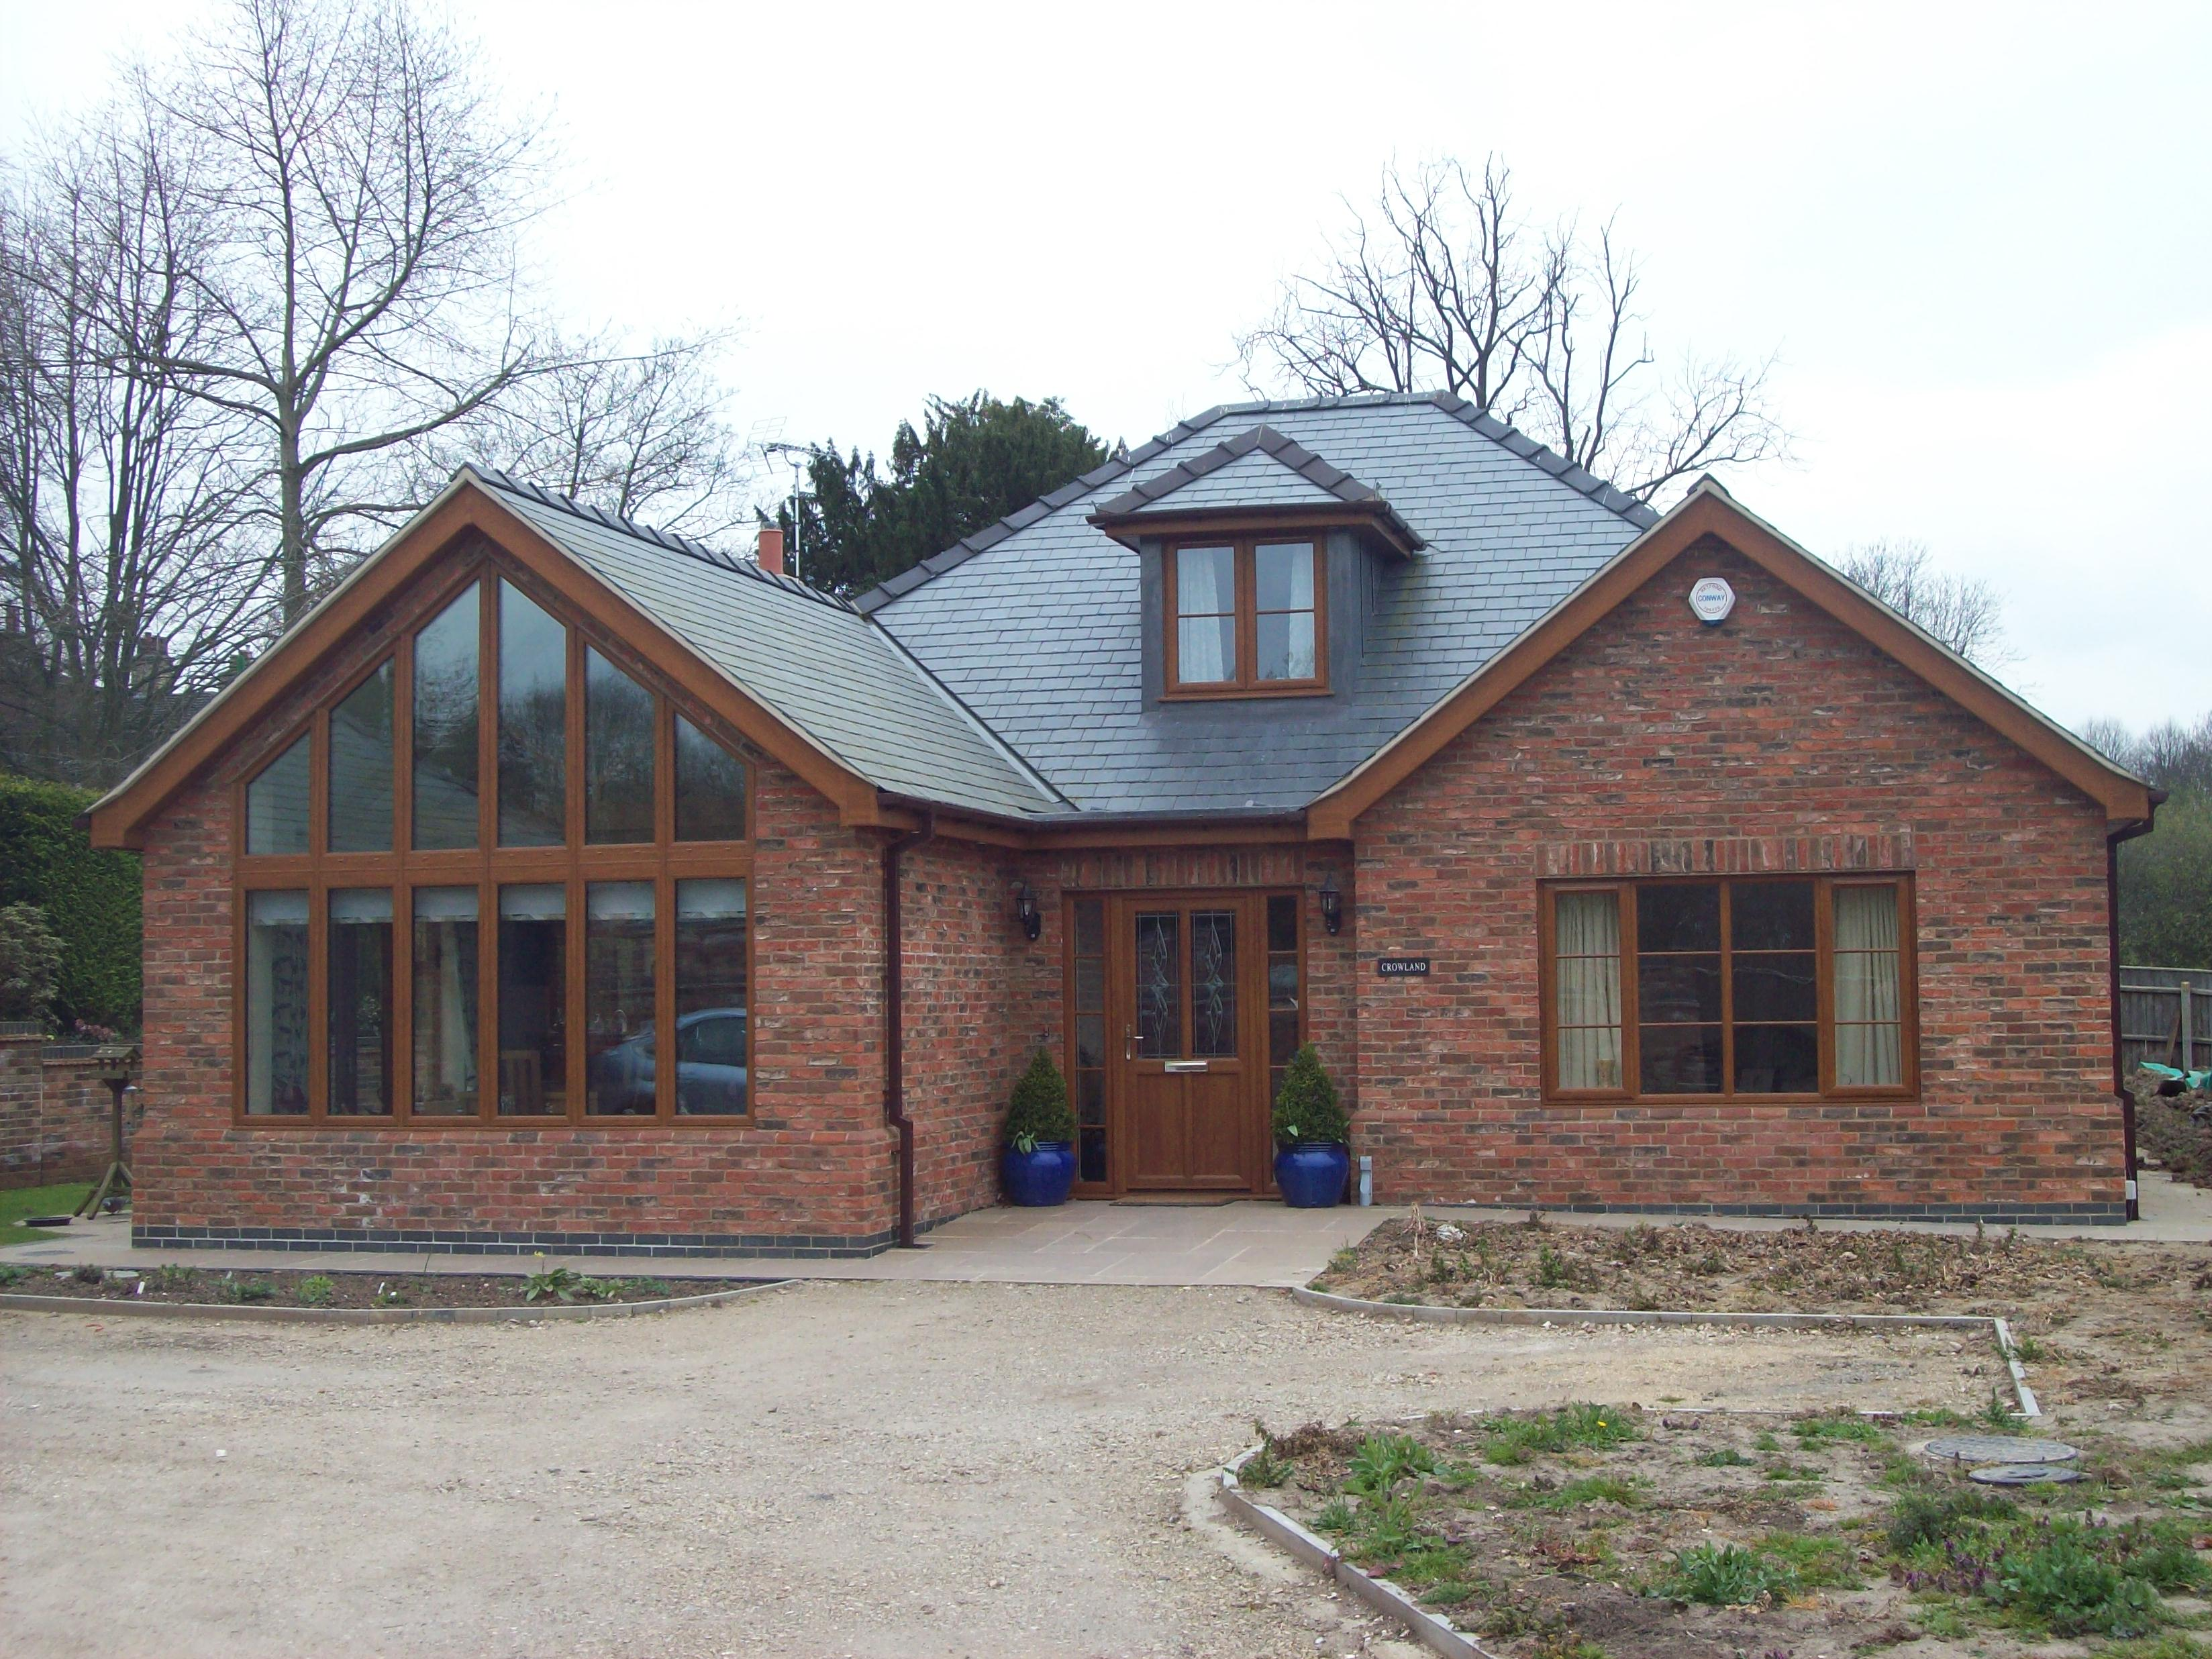 Architect Services For New House In Louth Grimsby Lincoln And Lincolnshire